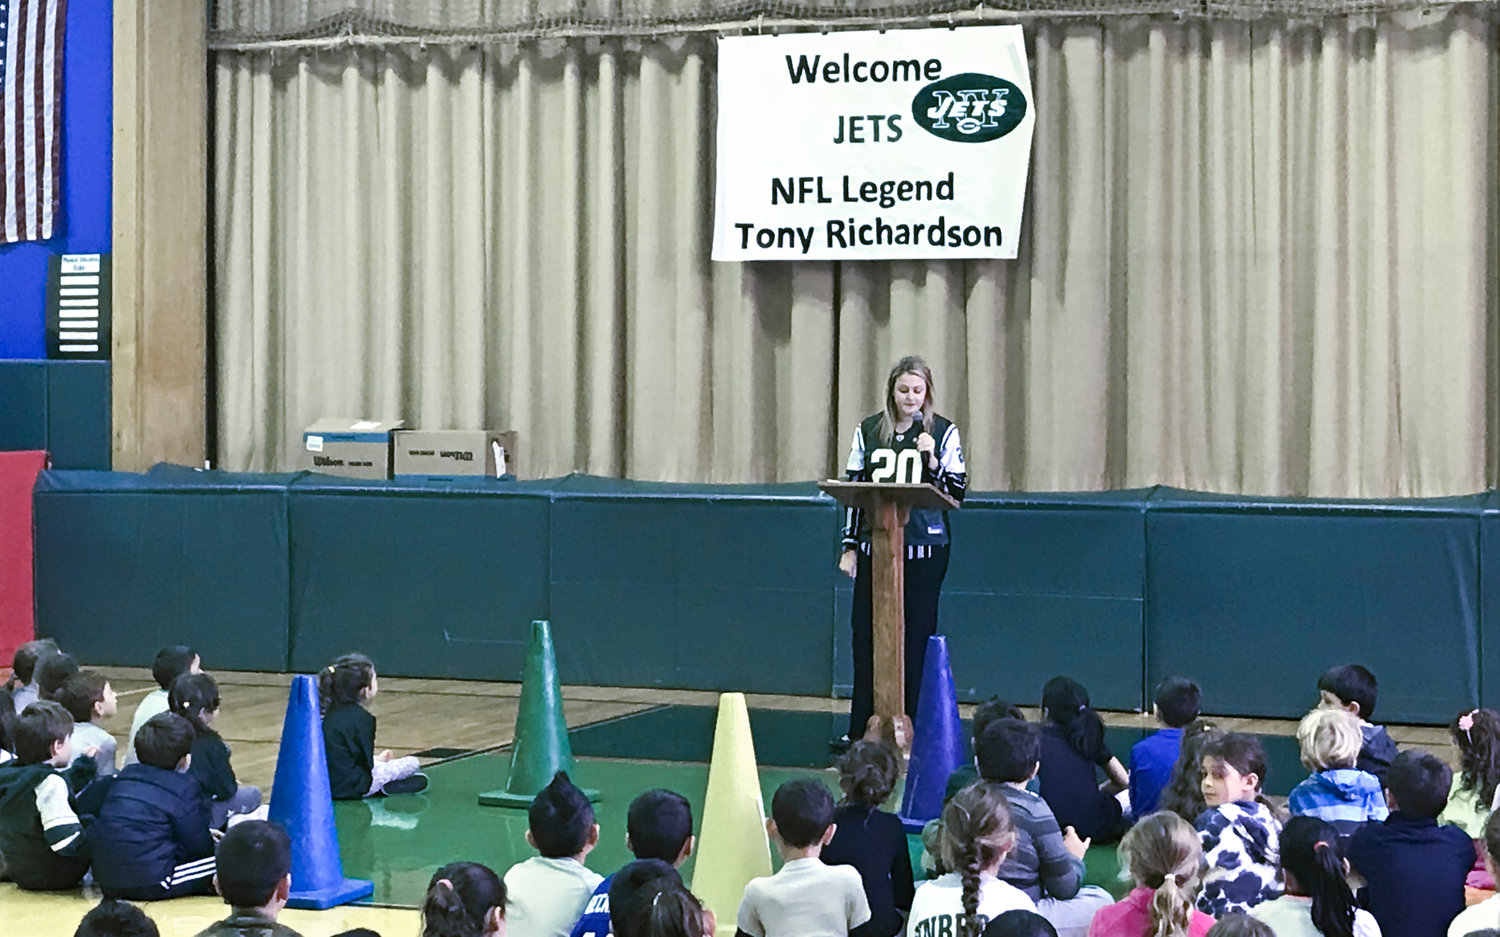 Principal Allison Banhazl wore a Jets jersey to welcome Richardson to the school.